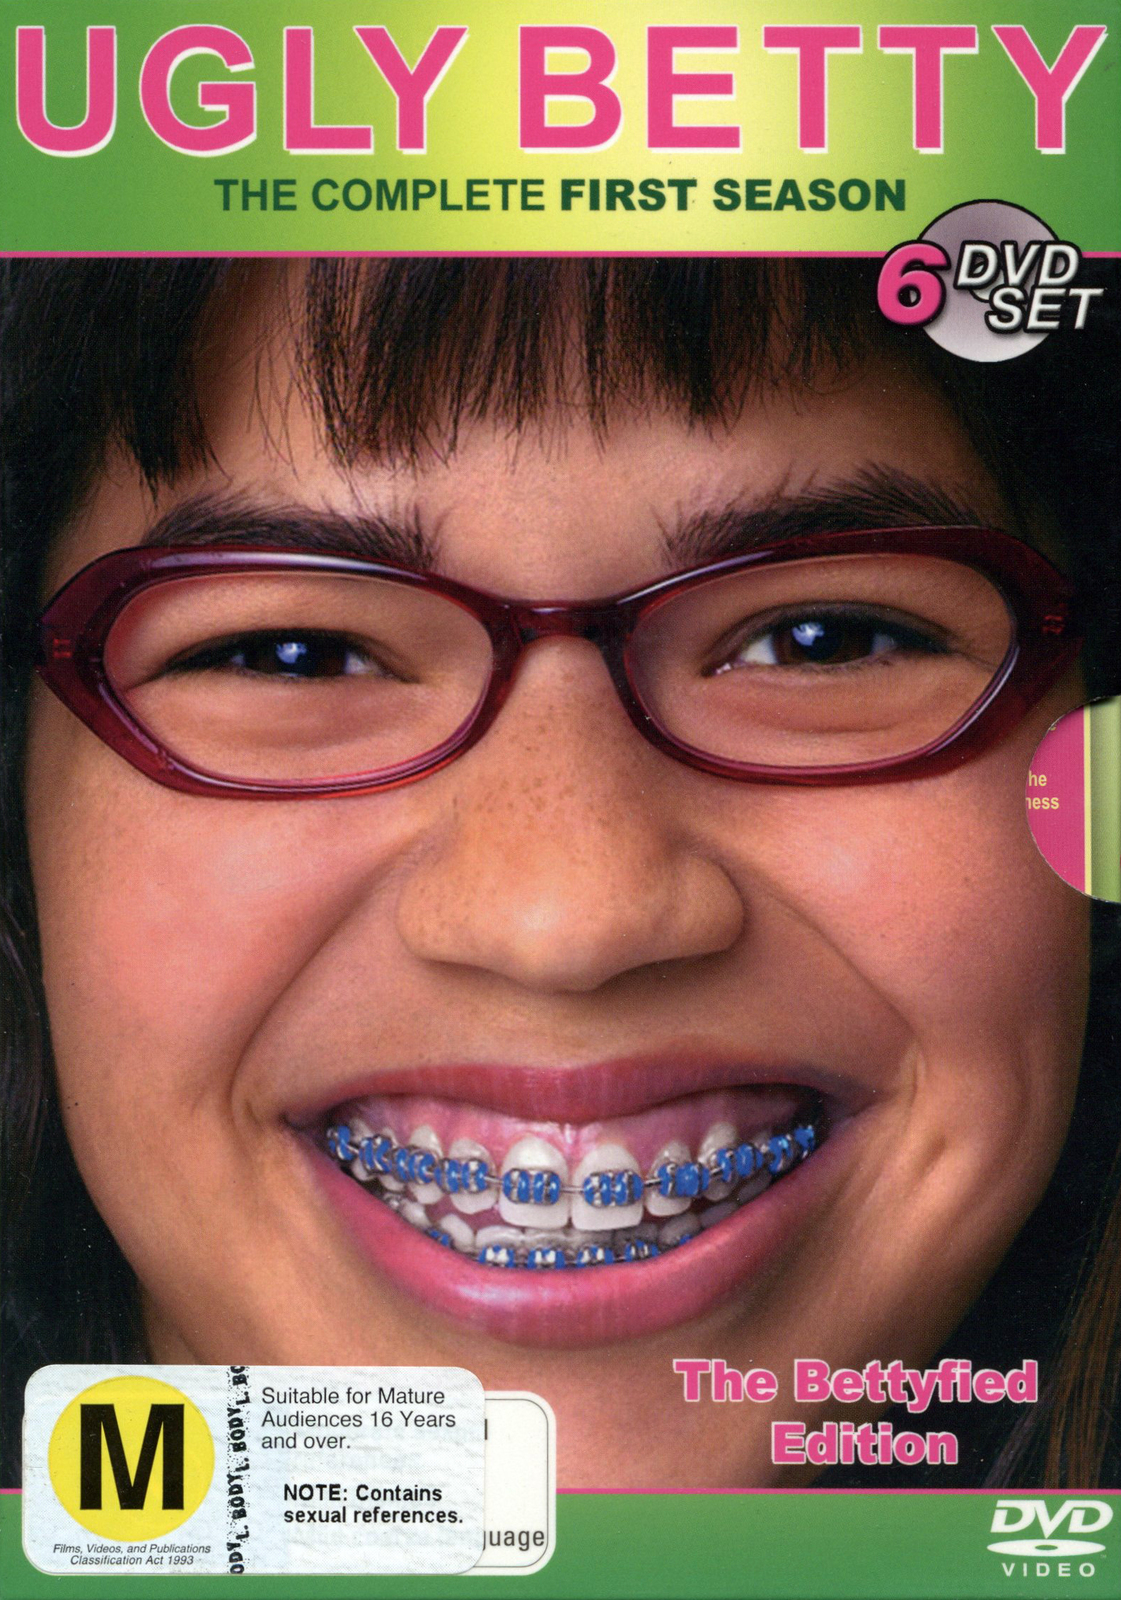 Ugly Betty - Complete Season 1 (6 Disc Box Set) on DVD image